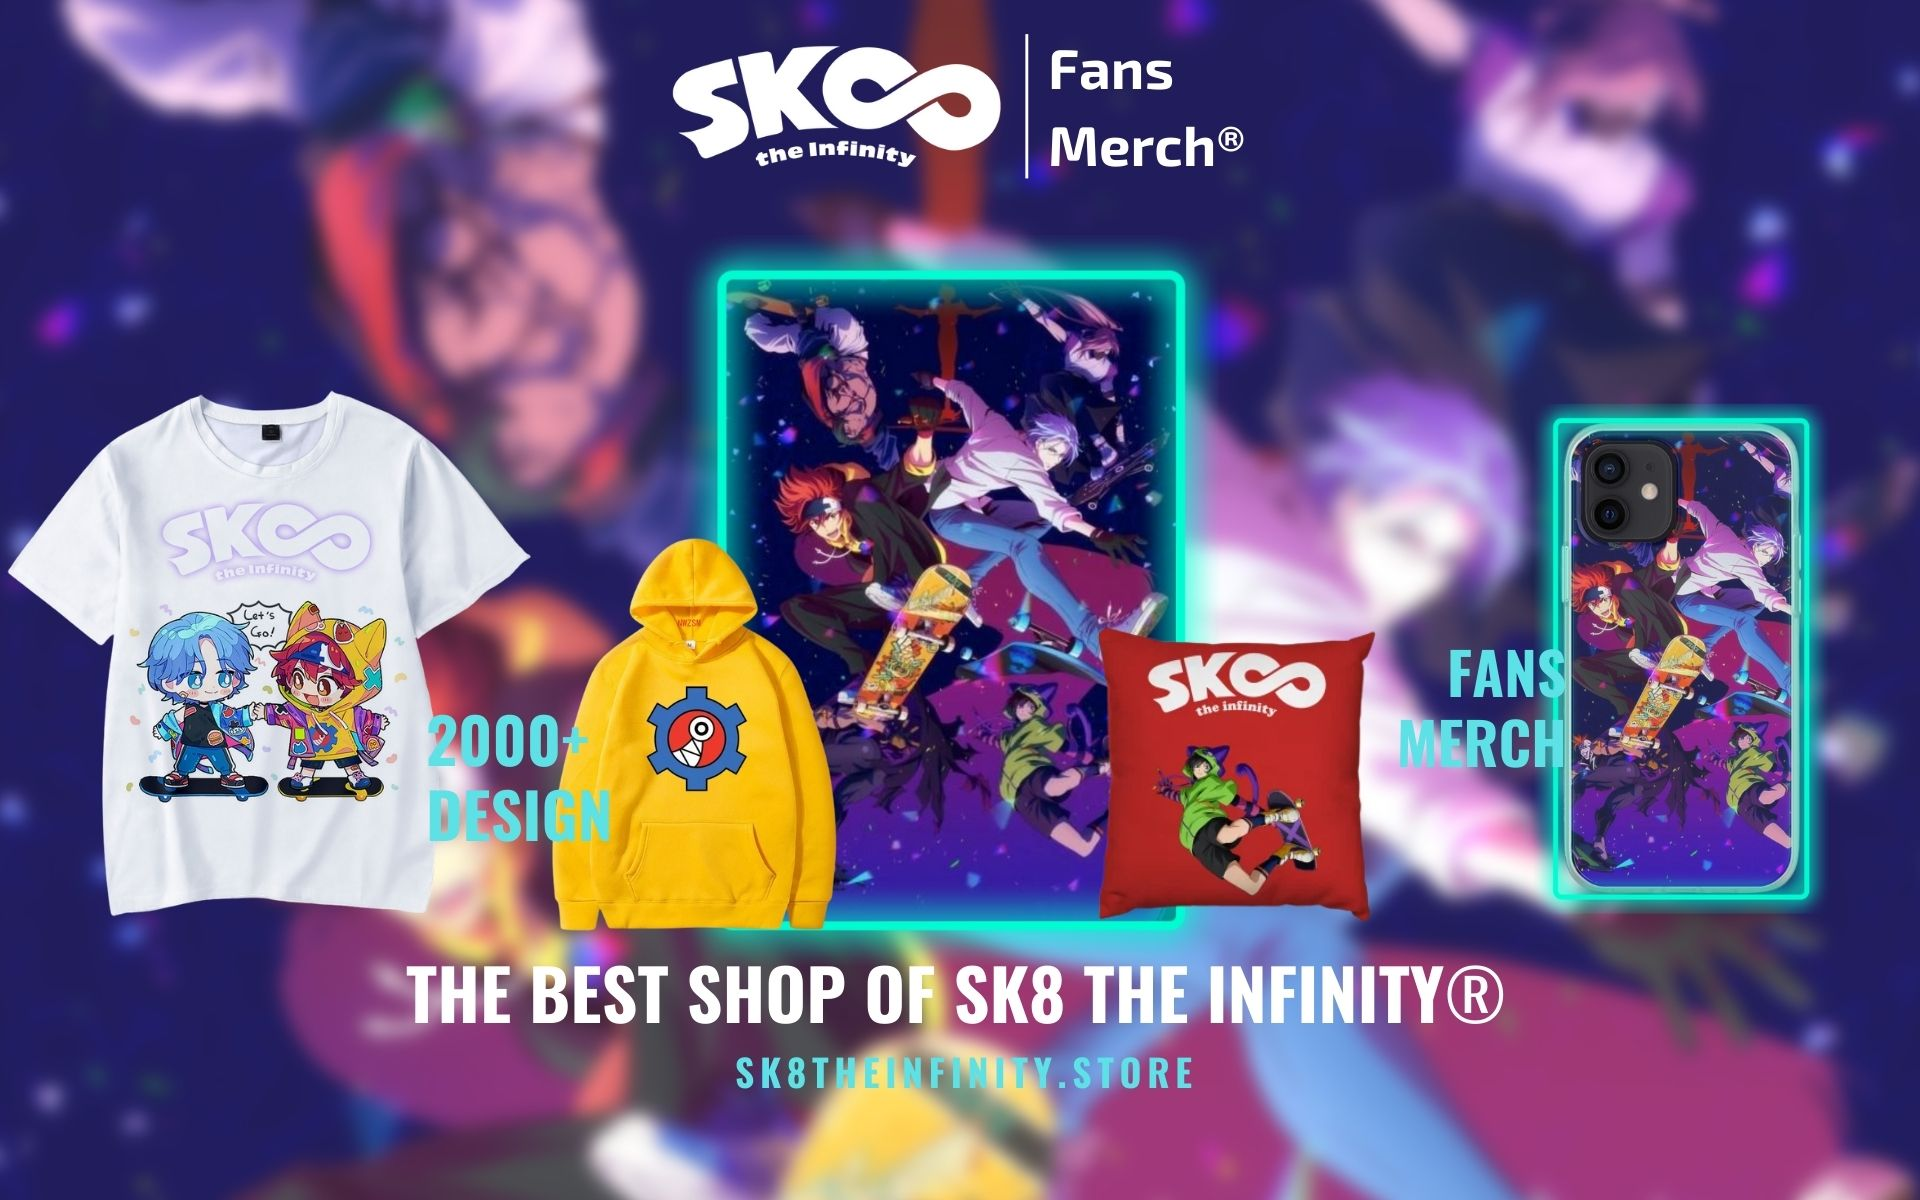 SK8 The Infinity Merch Web Banner - SK8 The Infinity Store